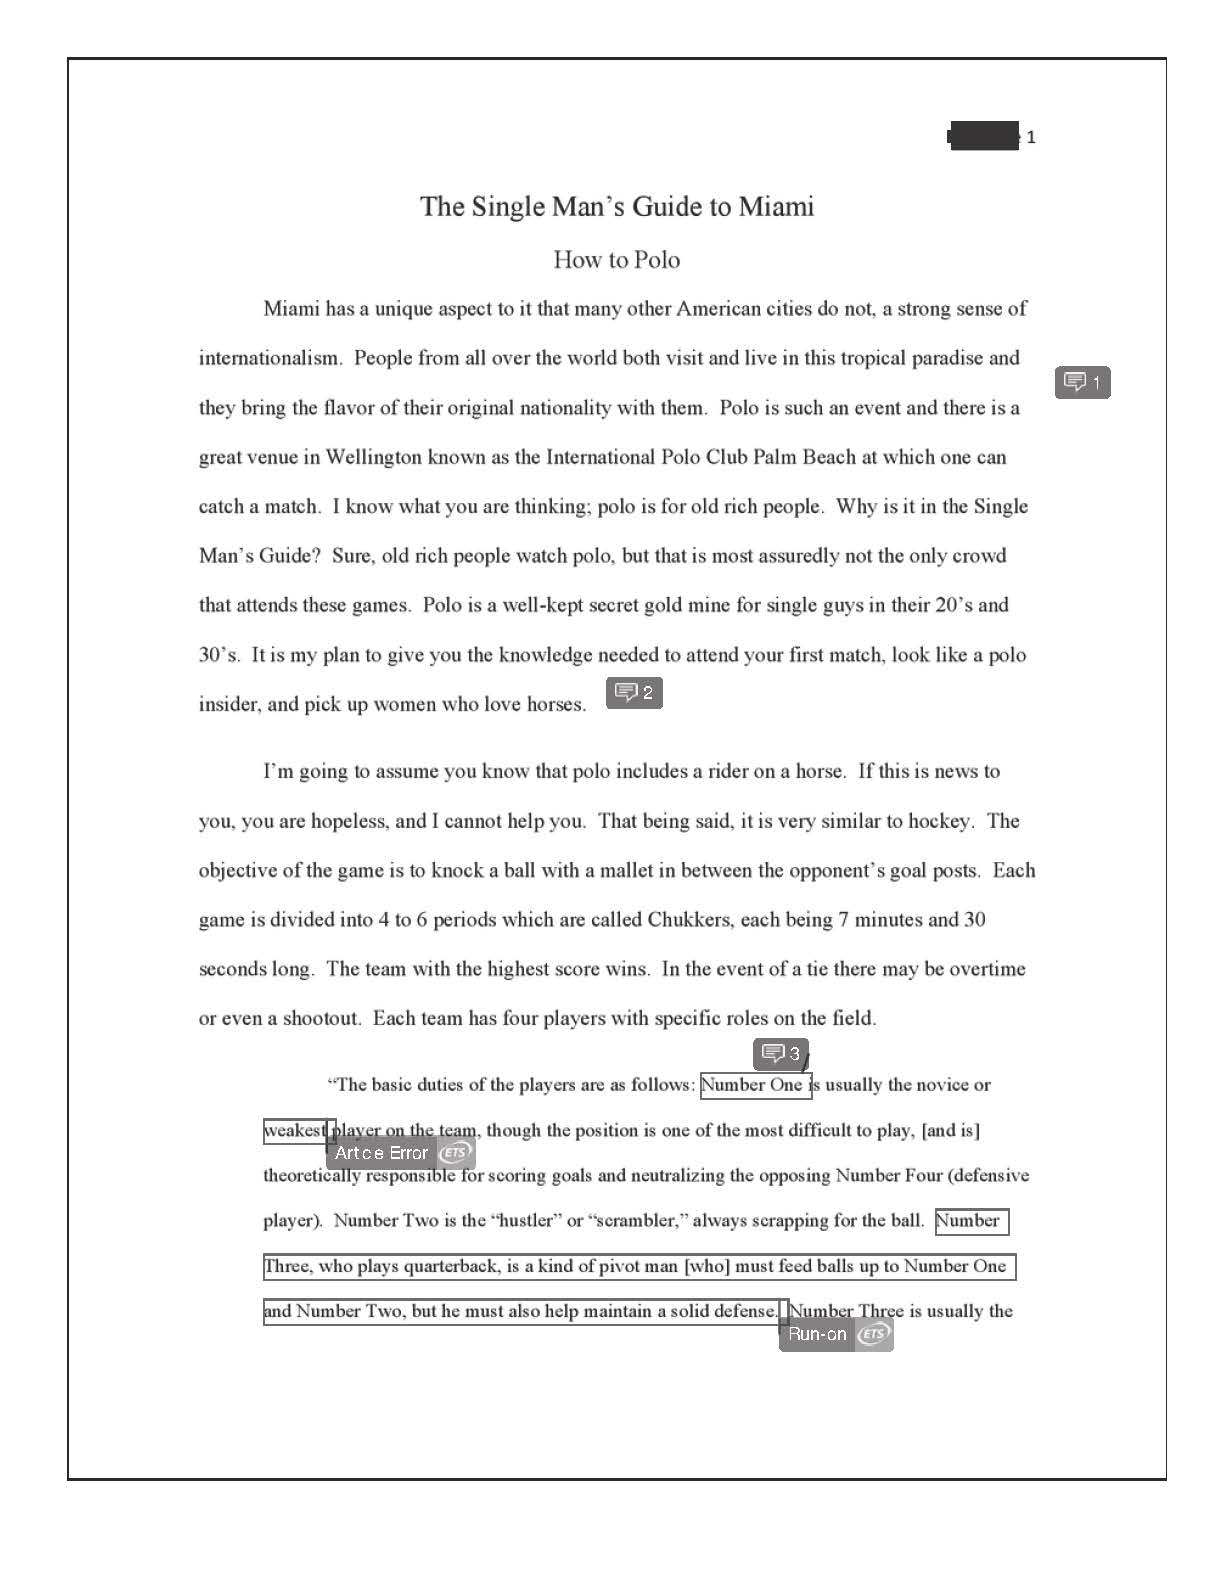 009 Essay Example Informative Format Final How To Polo Redacted Page 2 Unbelievable Paper Speech Sample Pdf Full